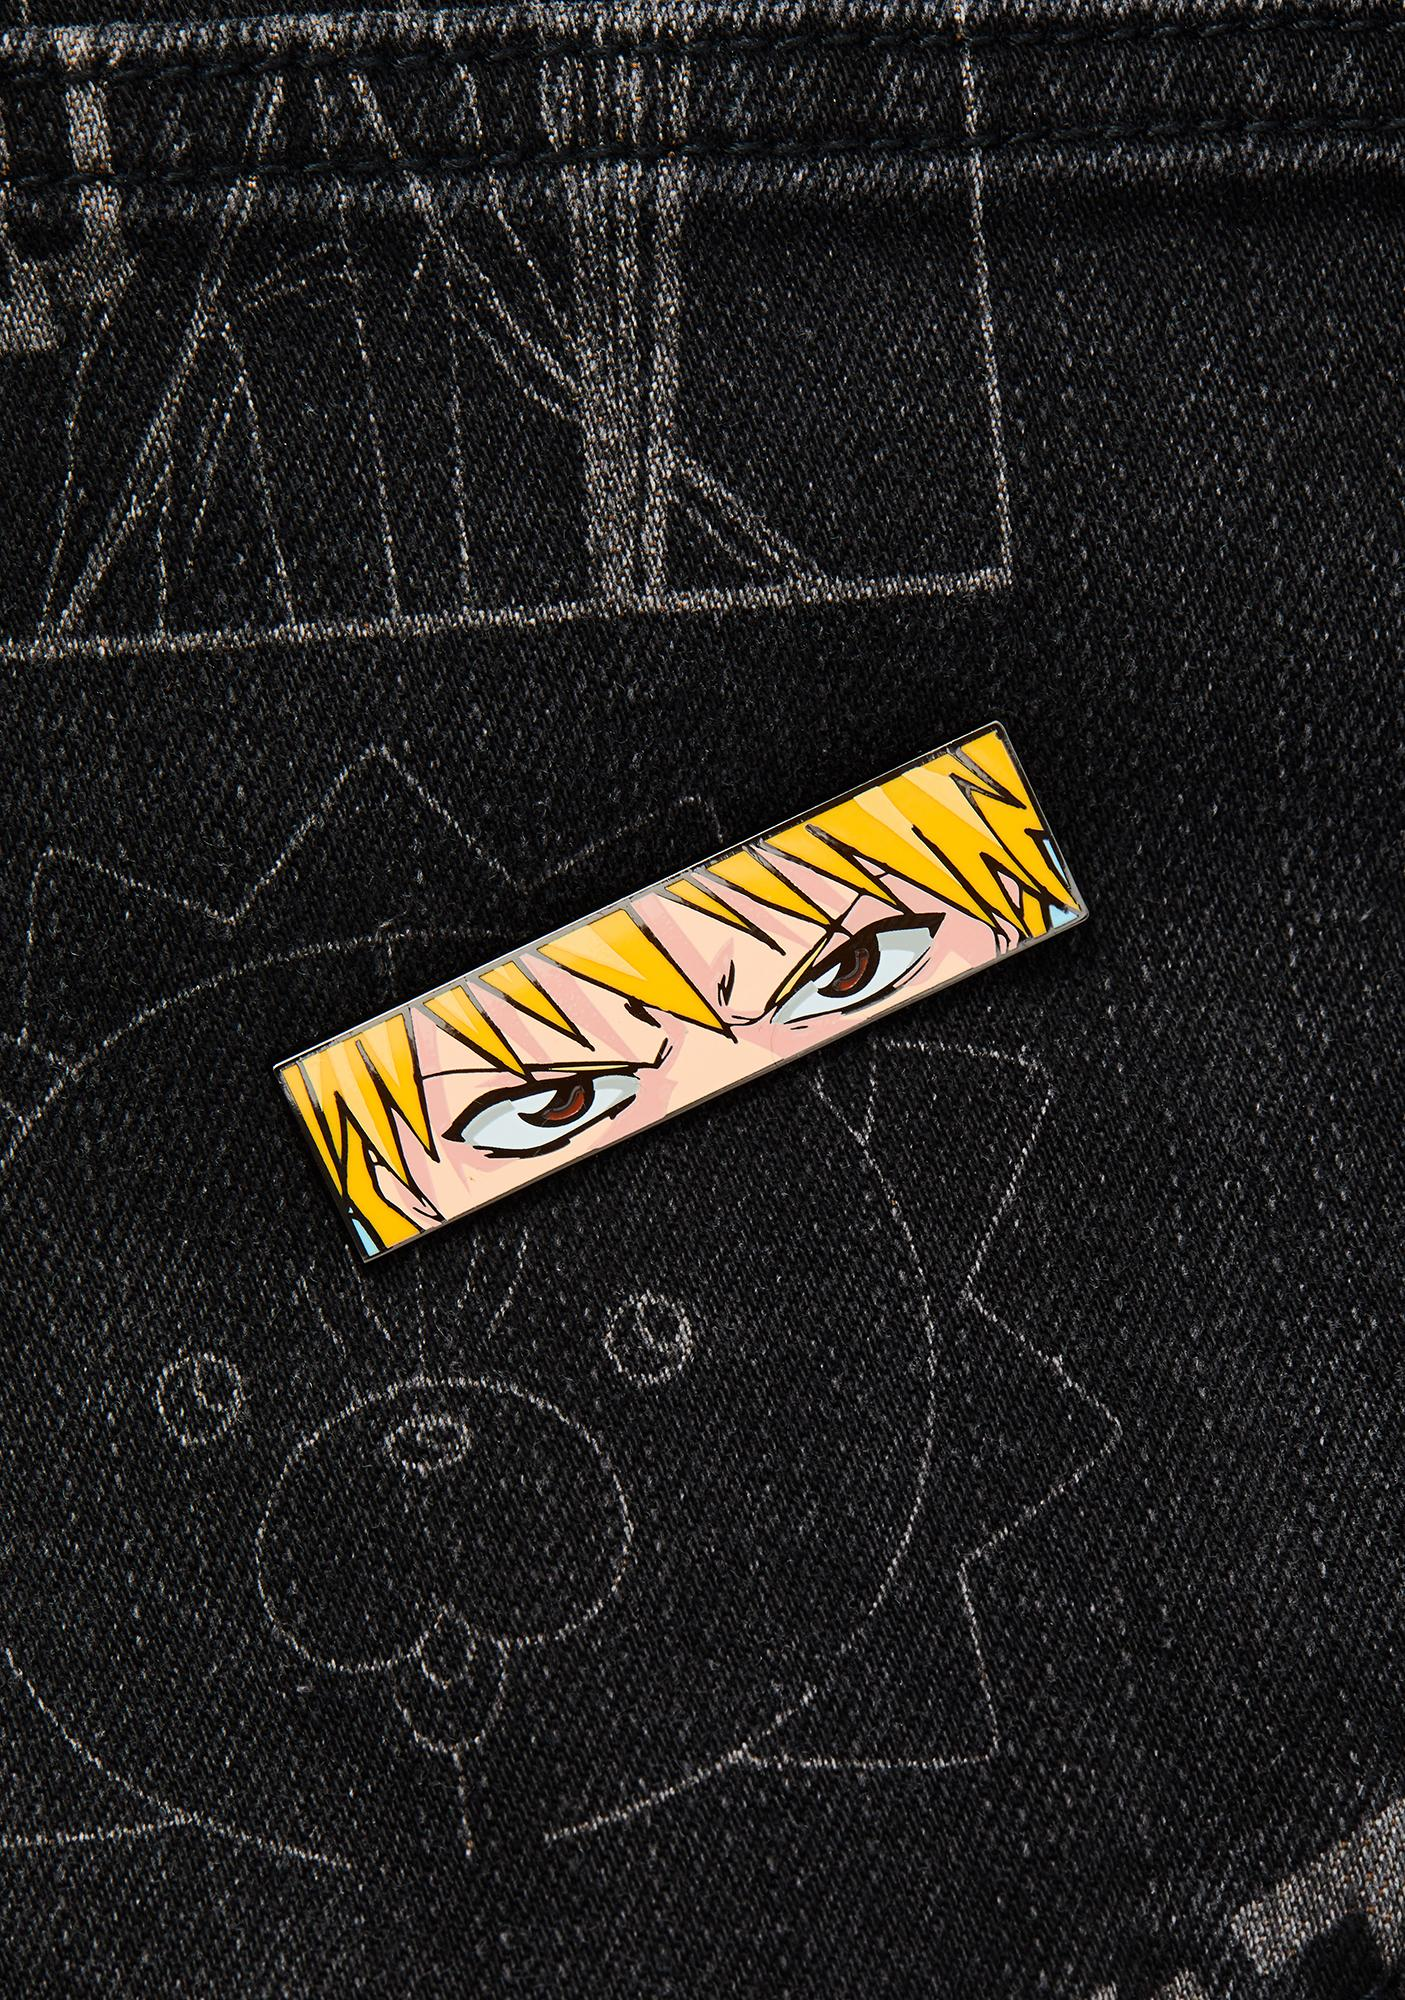 HYPLAND X Bleach Ichigo Eyes Pin